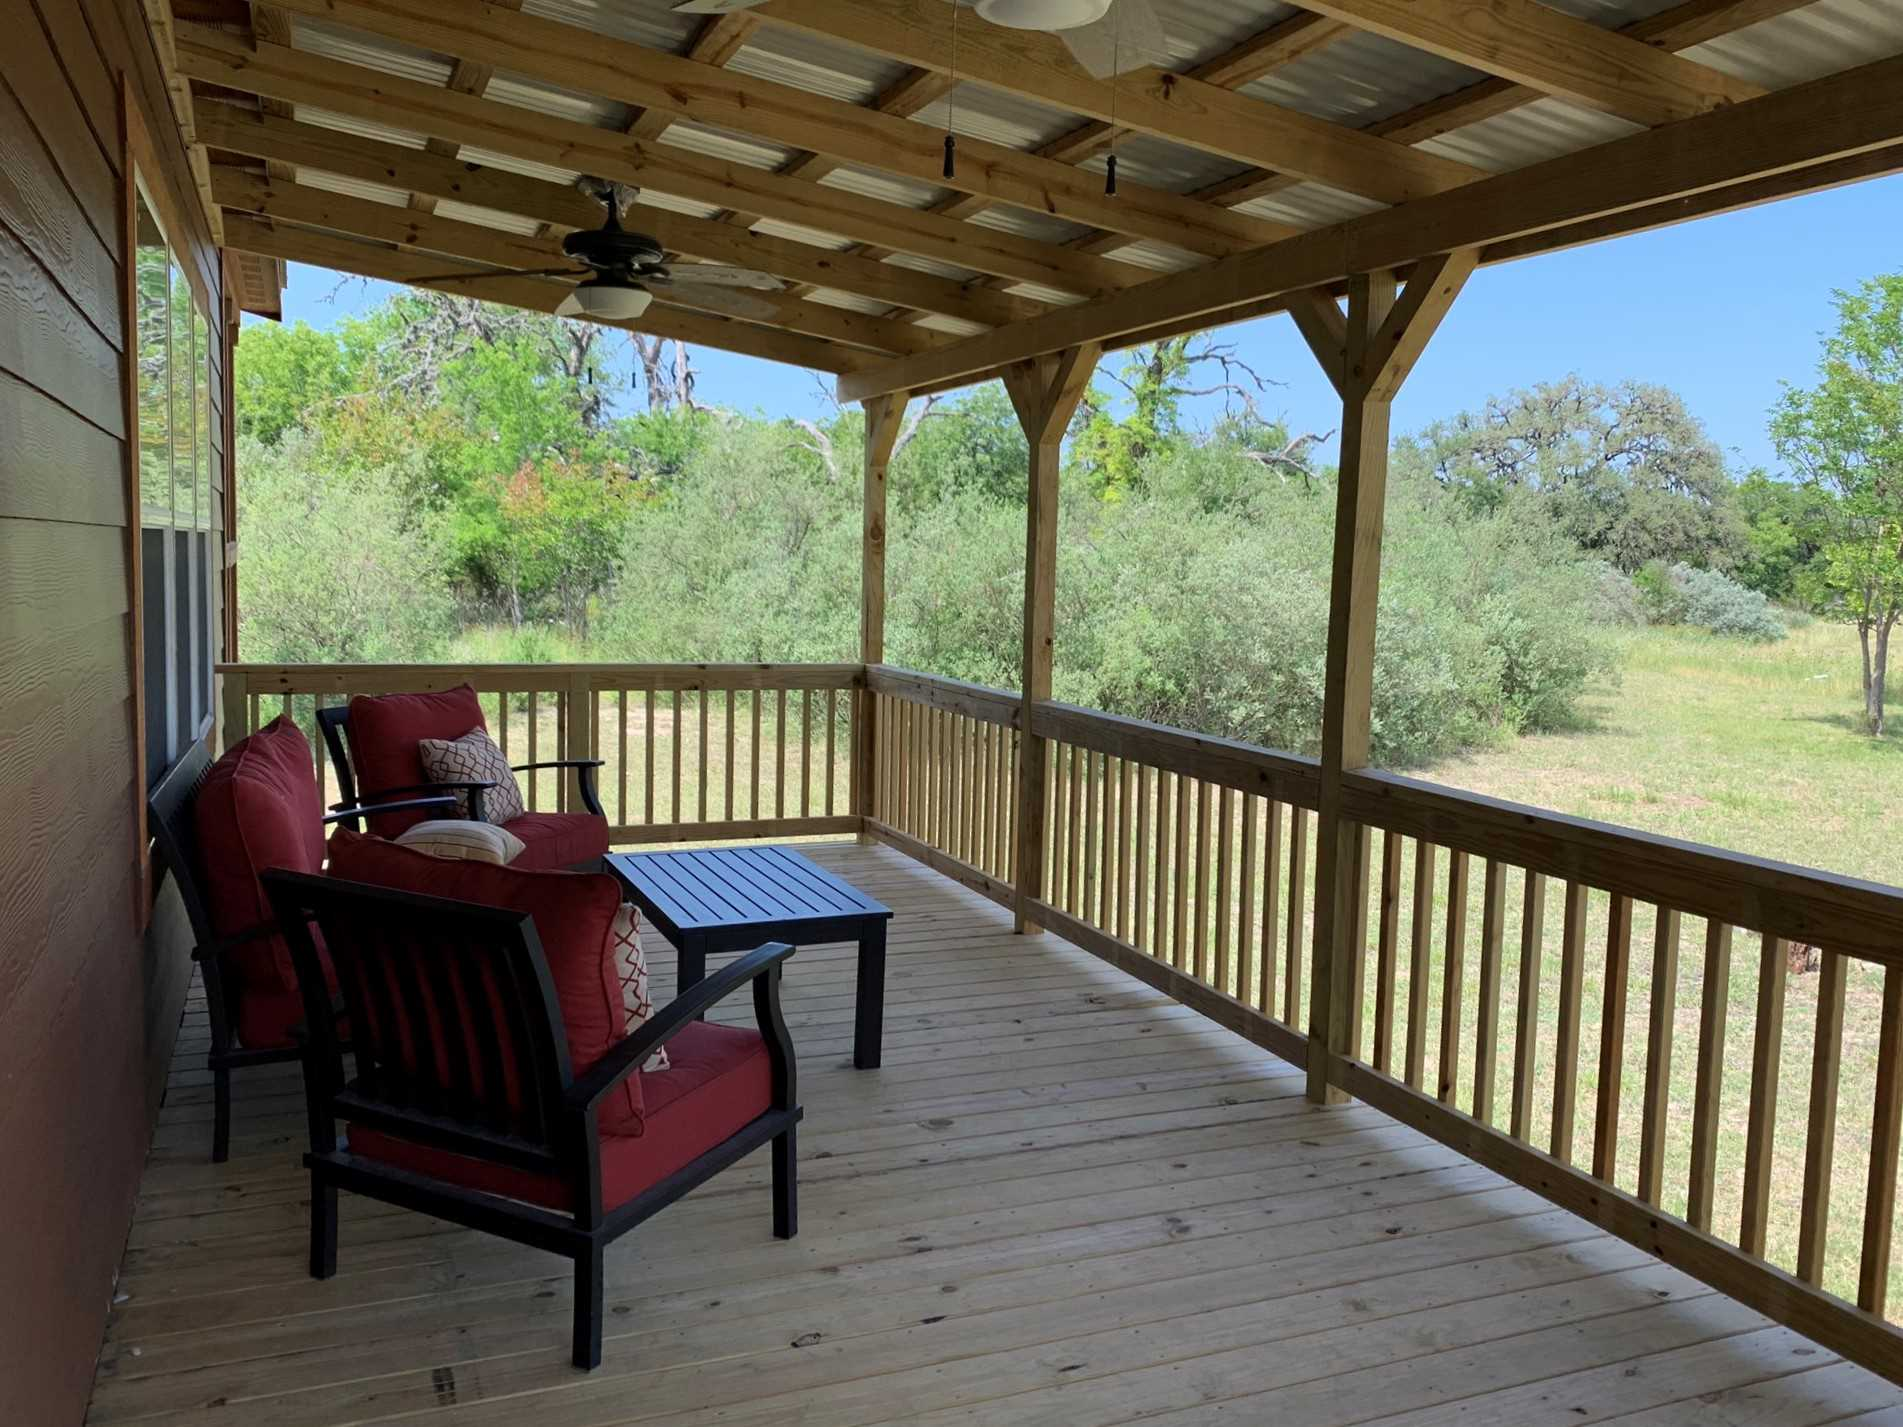 Ceiling fans on the porch will get a good breeze going when Mother Nature's in a calmer mood.